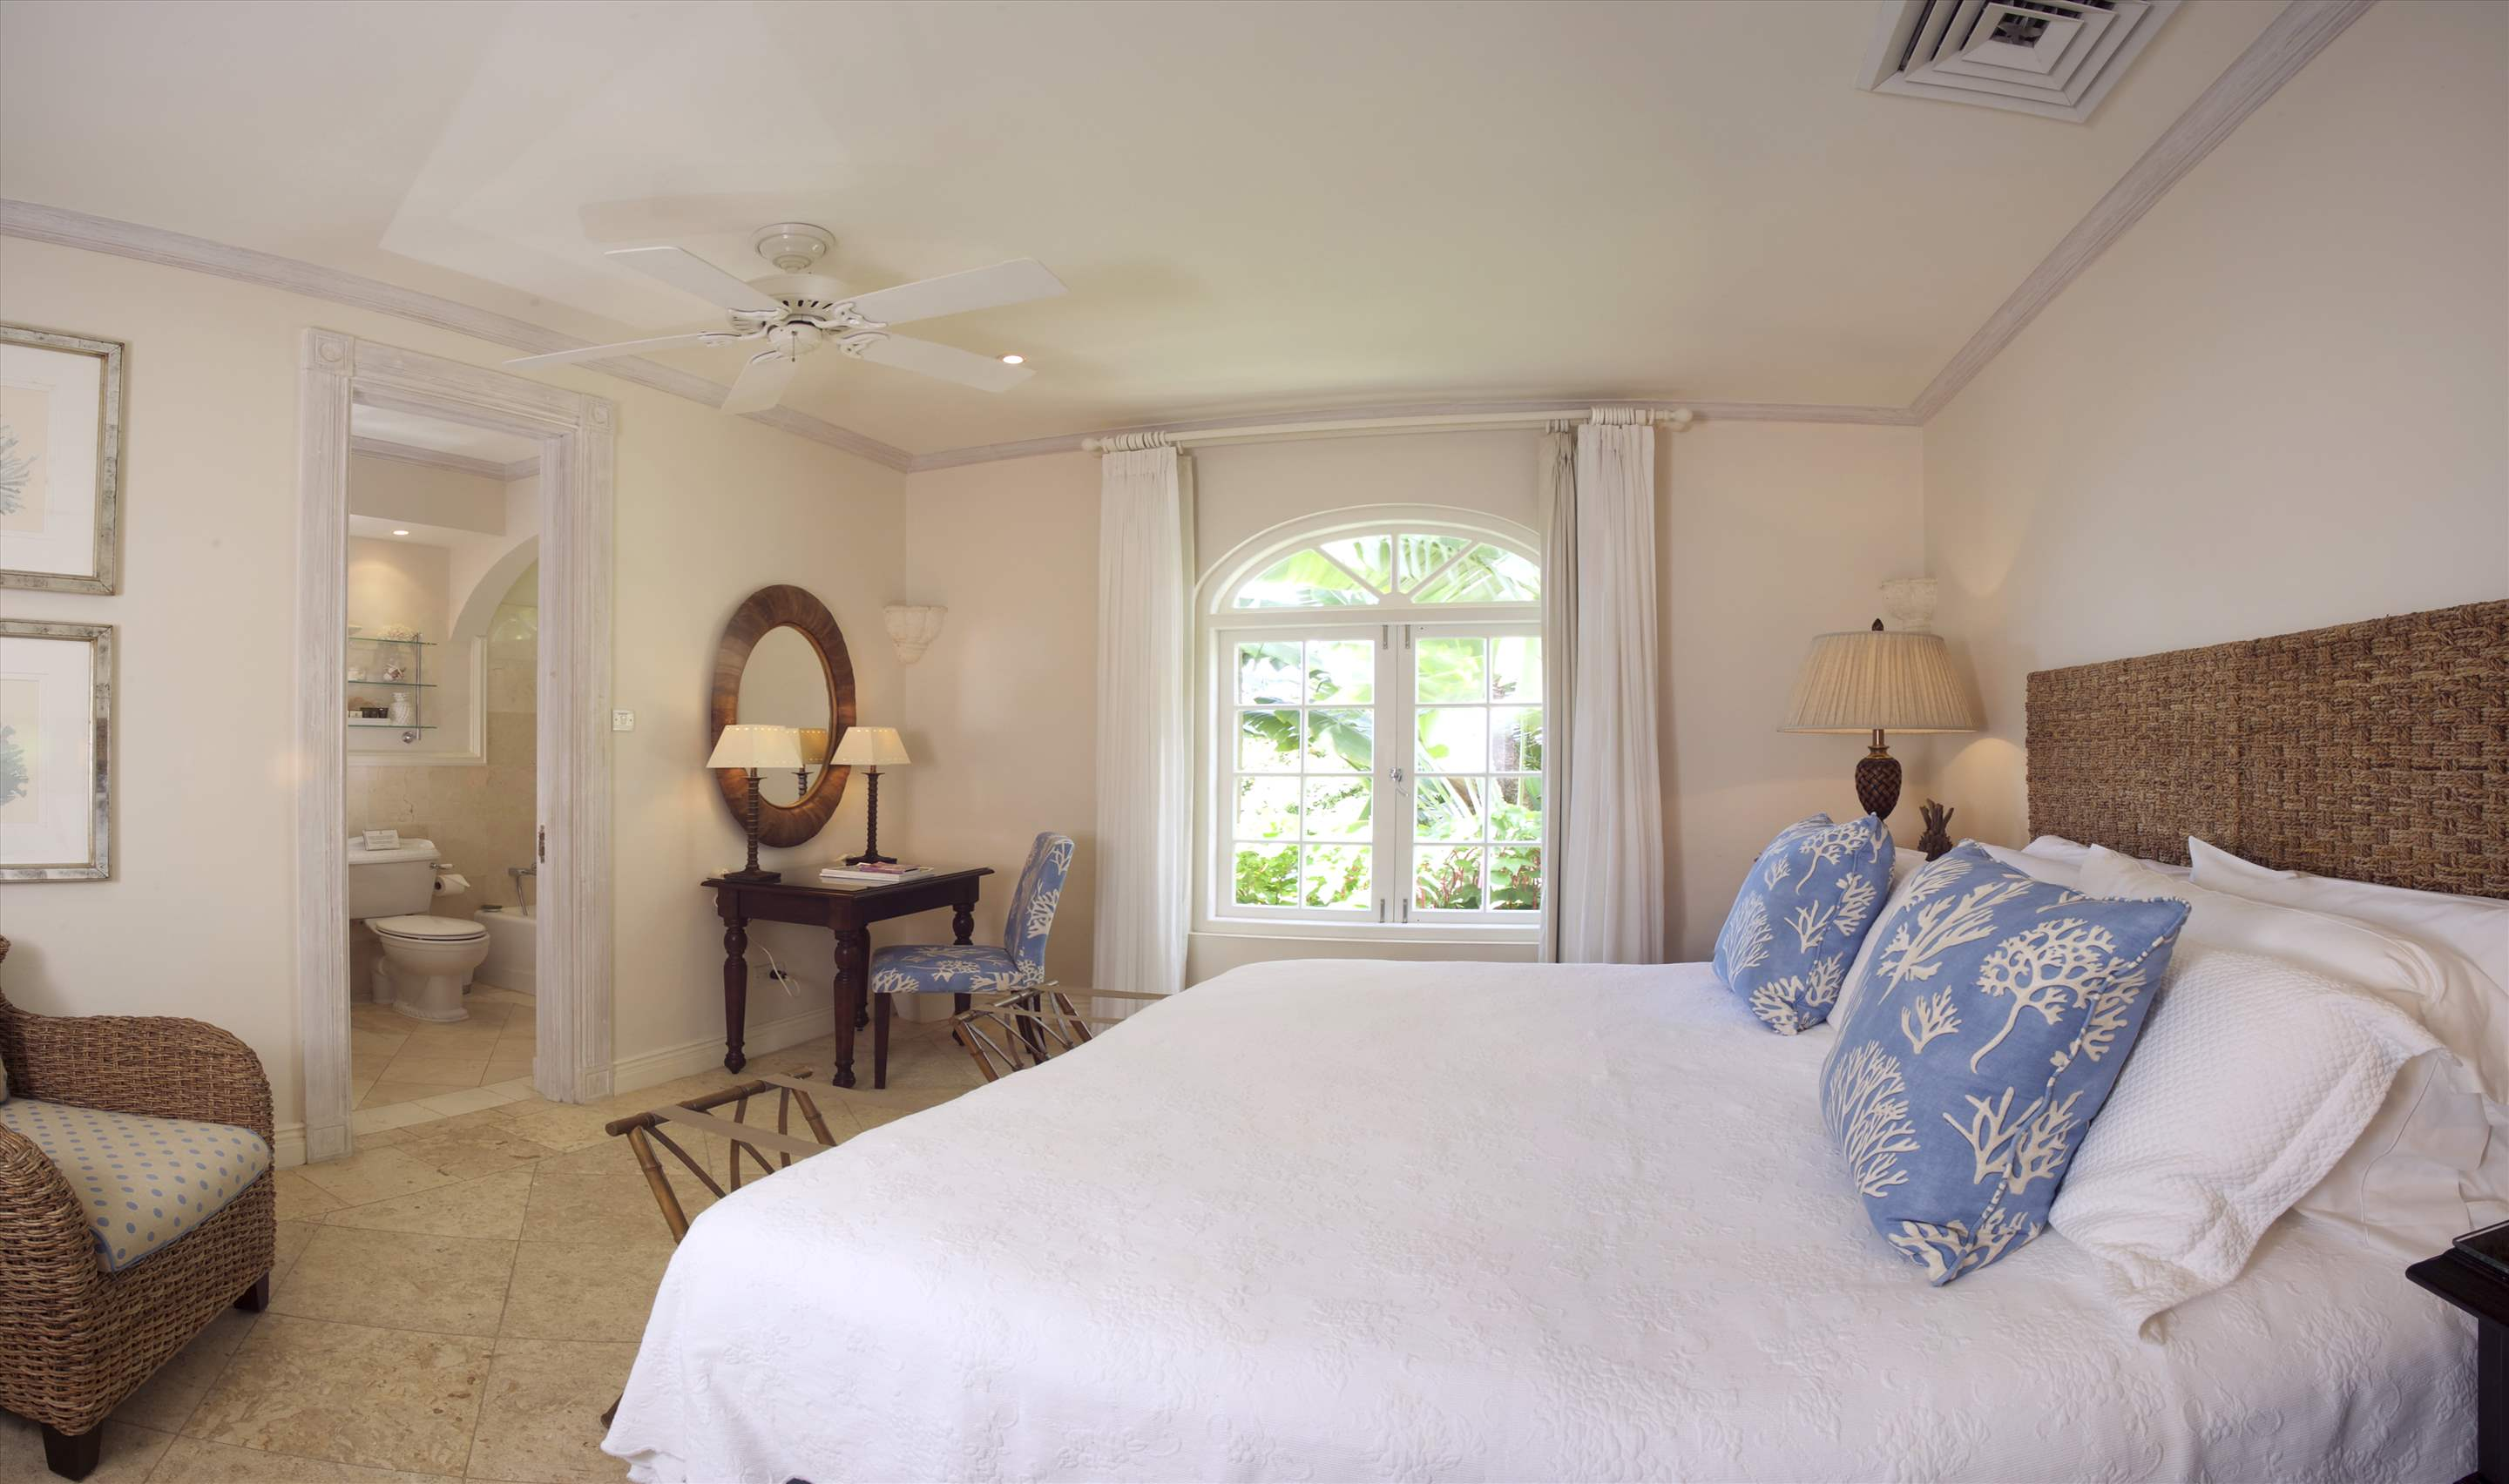 Plantation House, Royal Westmoreland, 6 bedroom, 6 bedroom villa in St. James & West Coast, Barbados Photo #20